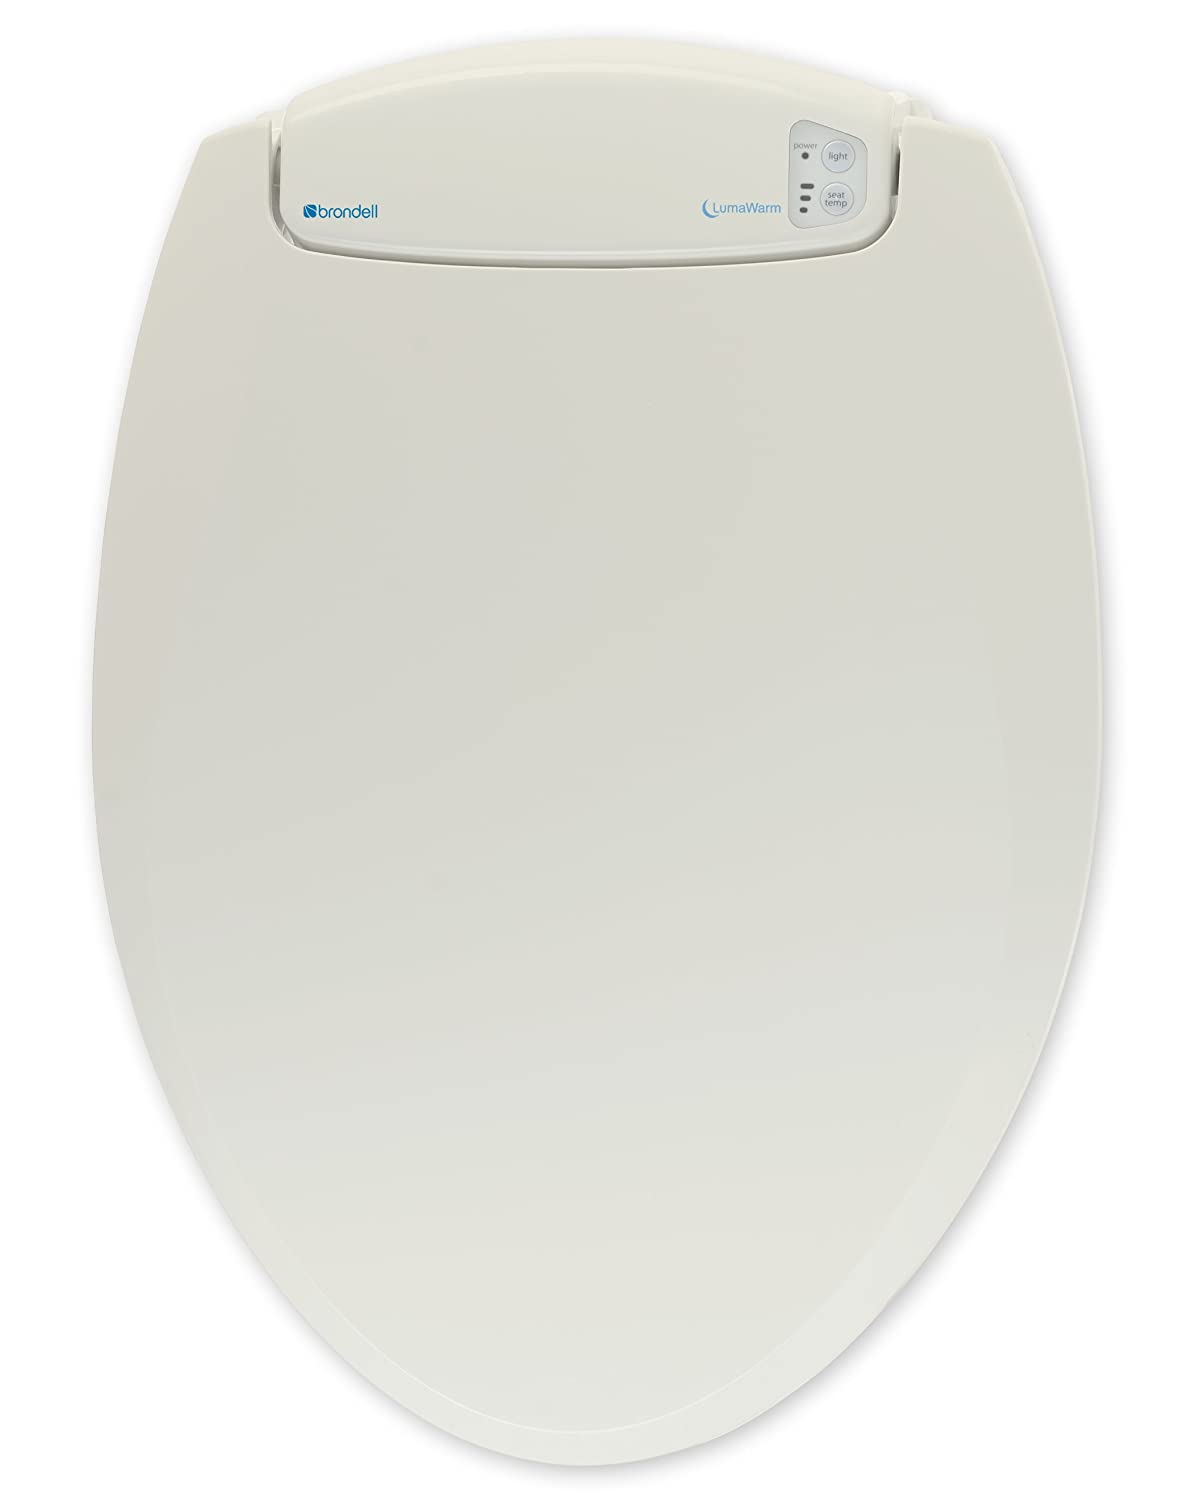 Best toilet on the market reviews - Brondell L60 Eb Lumawarm Heated Nightlight Elongated Toilet Seat